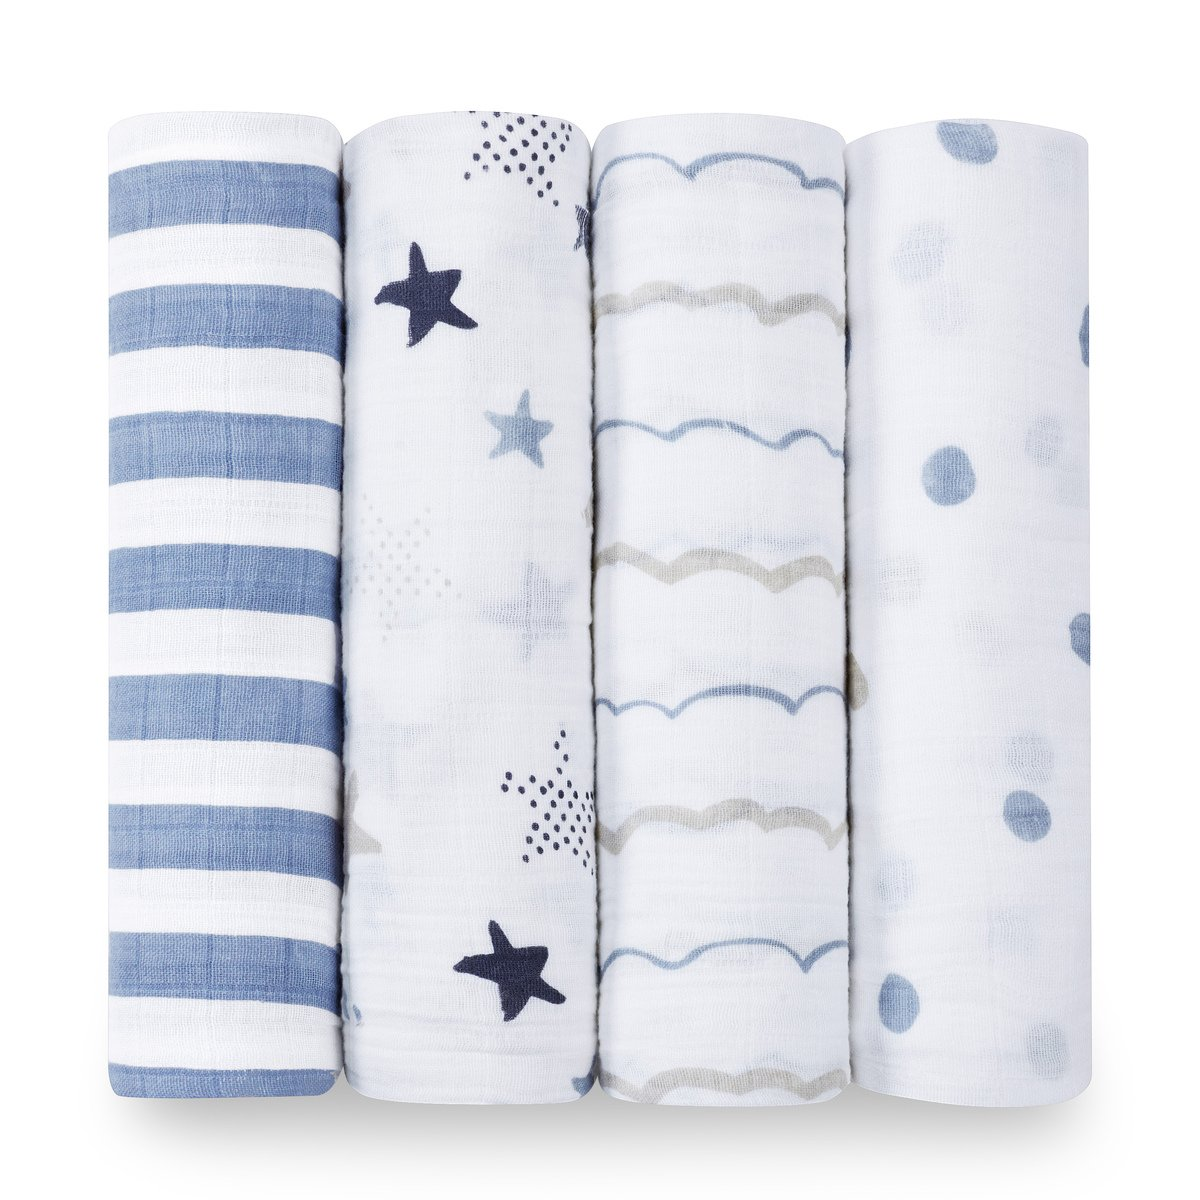 aden + anais Classic Swaddle Baby Blanket, 100% Cotton Muslin, Large 47 X 47 inch, 4 Pack, Rock Star, Blue